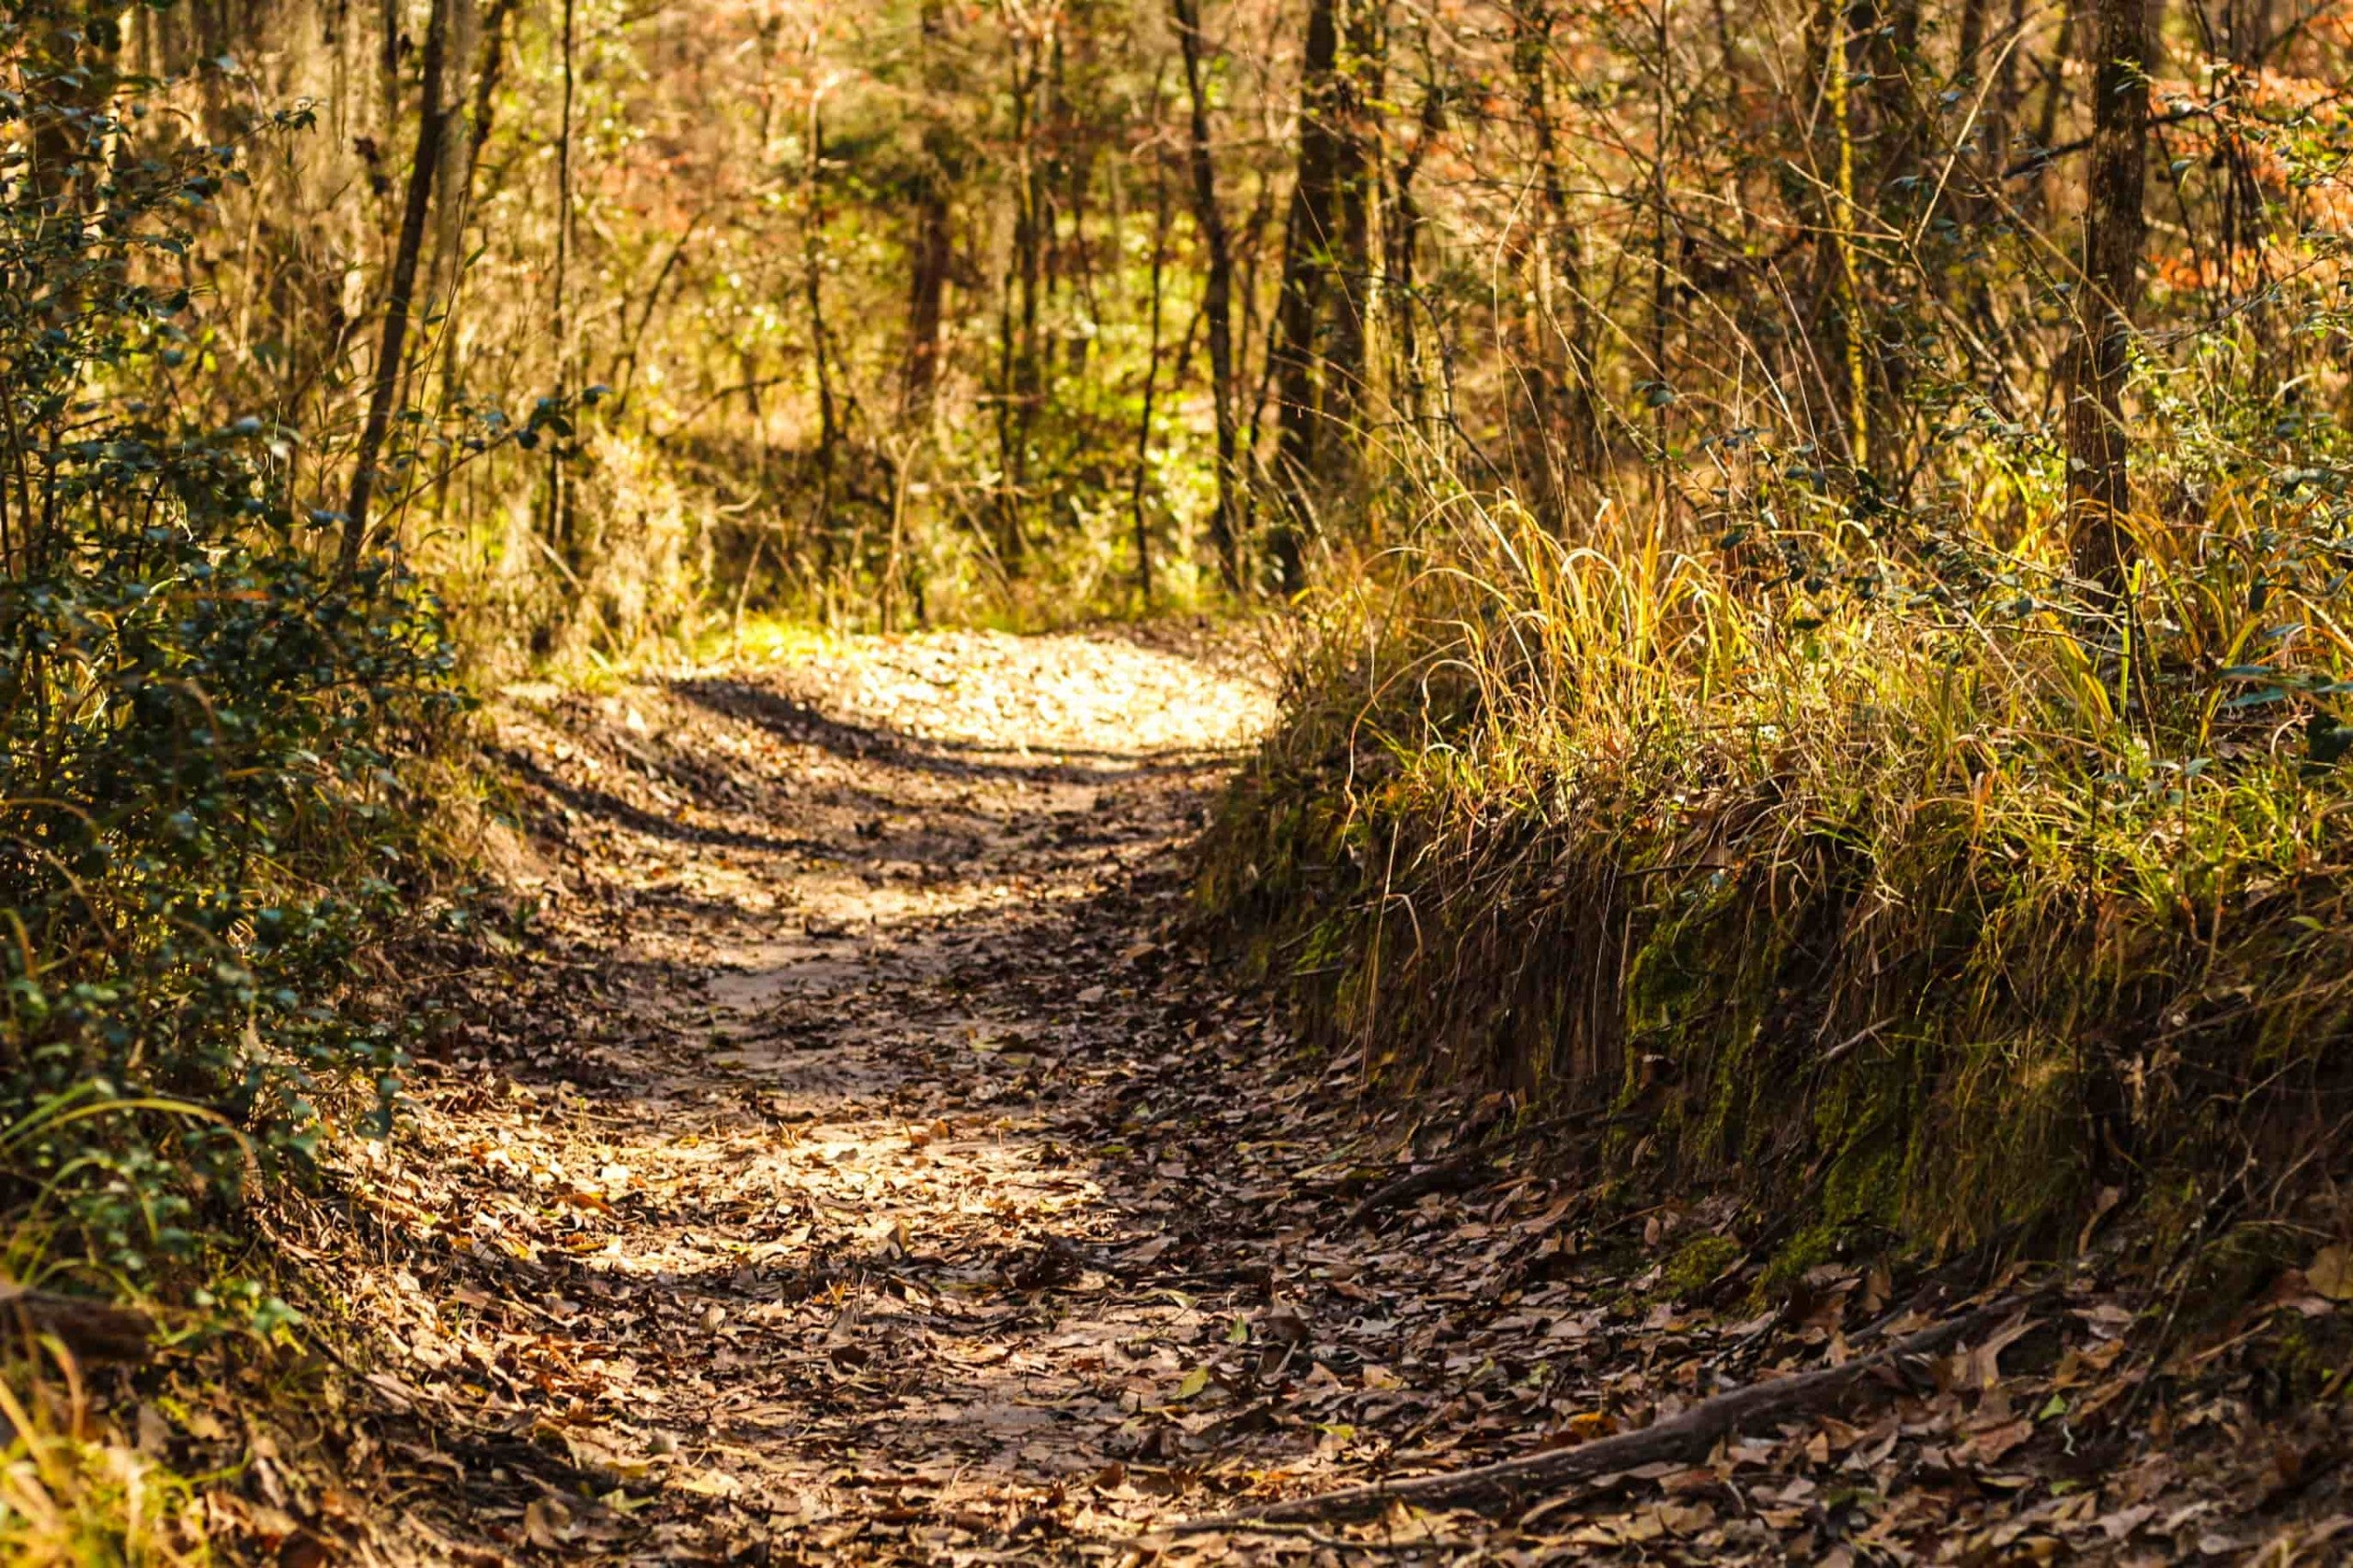 Lone Star Trail through Sam Houston National Forest in the fall.